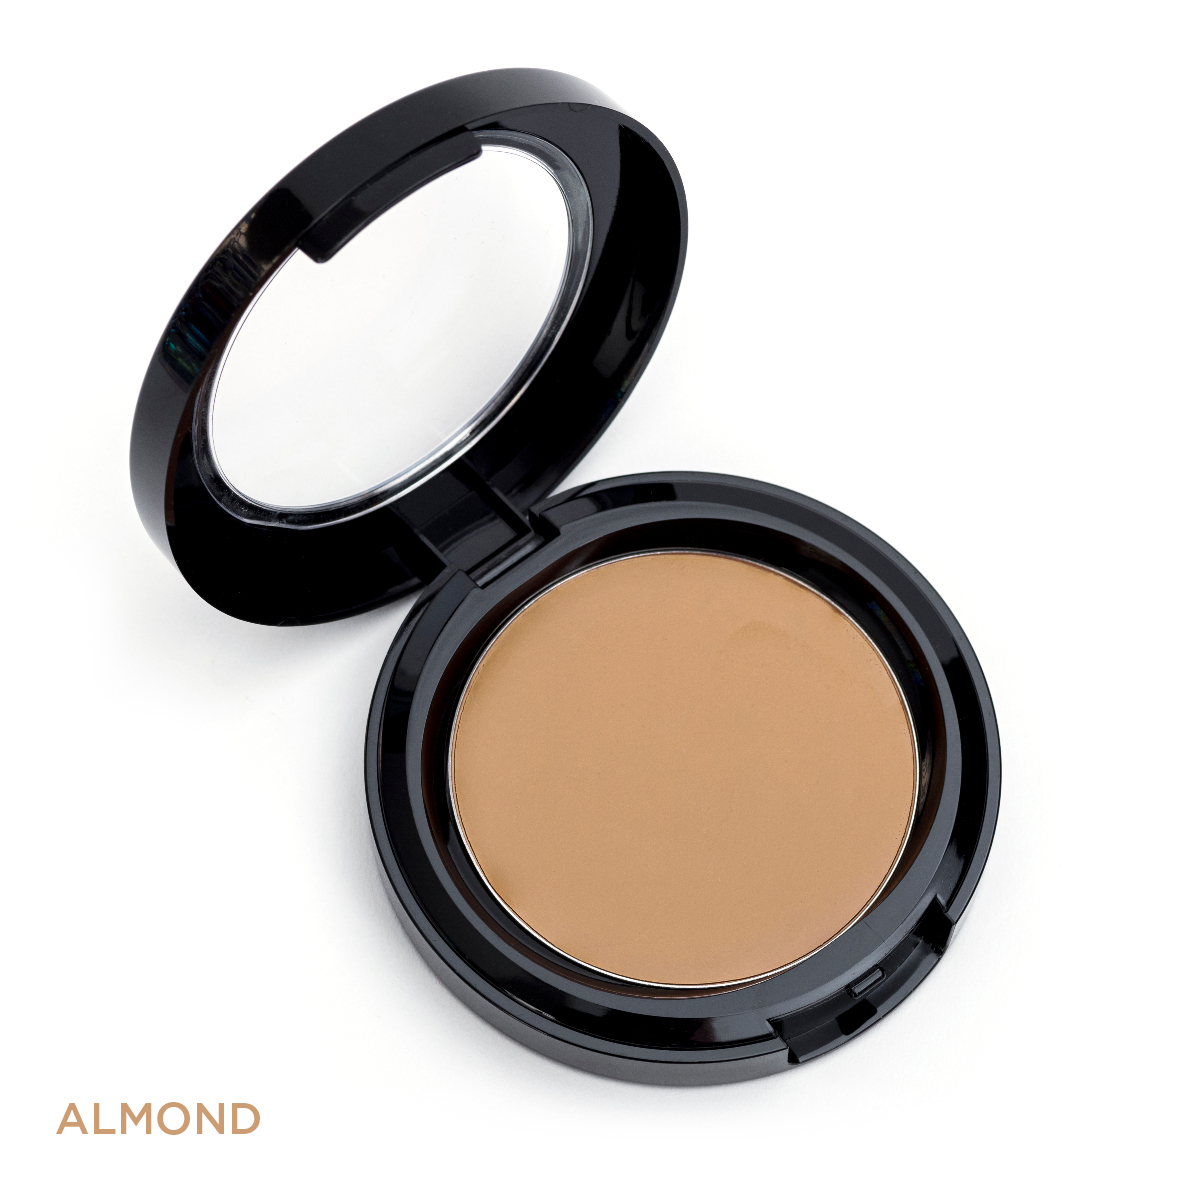 Crème-to-Powder Foundation